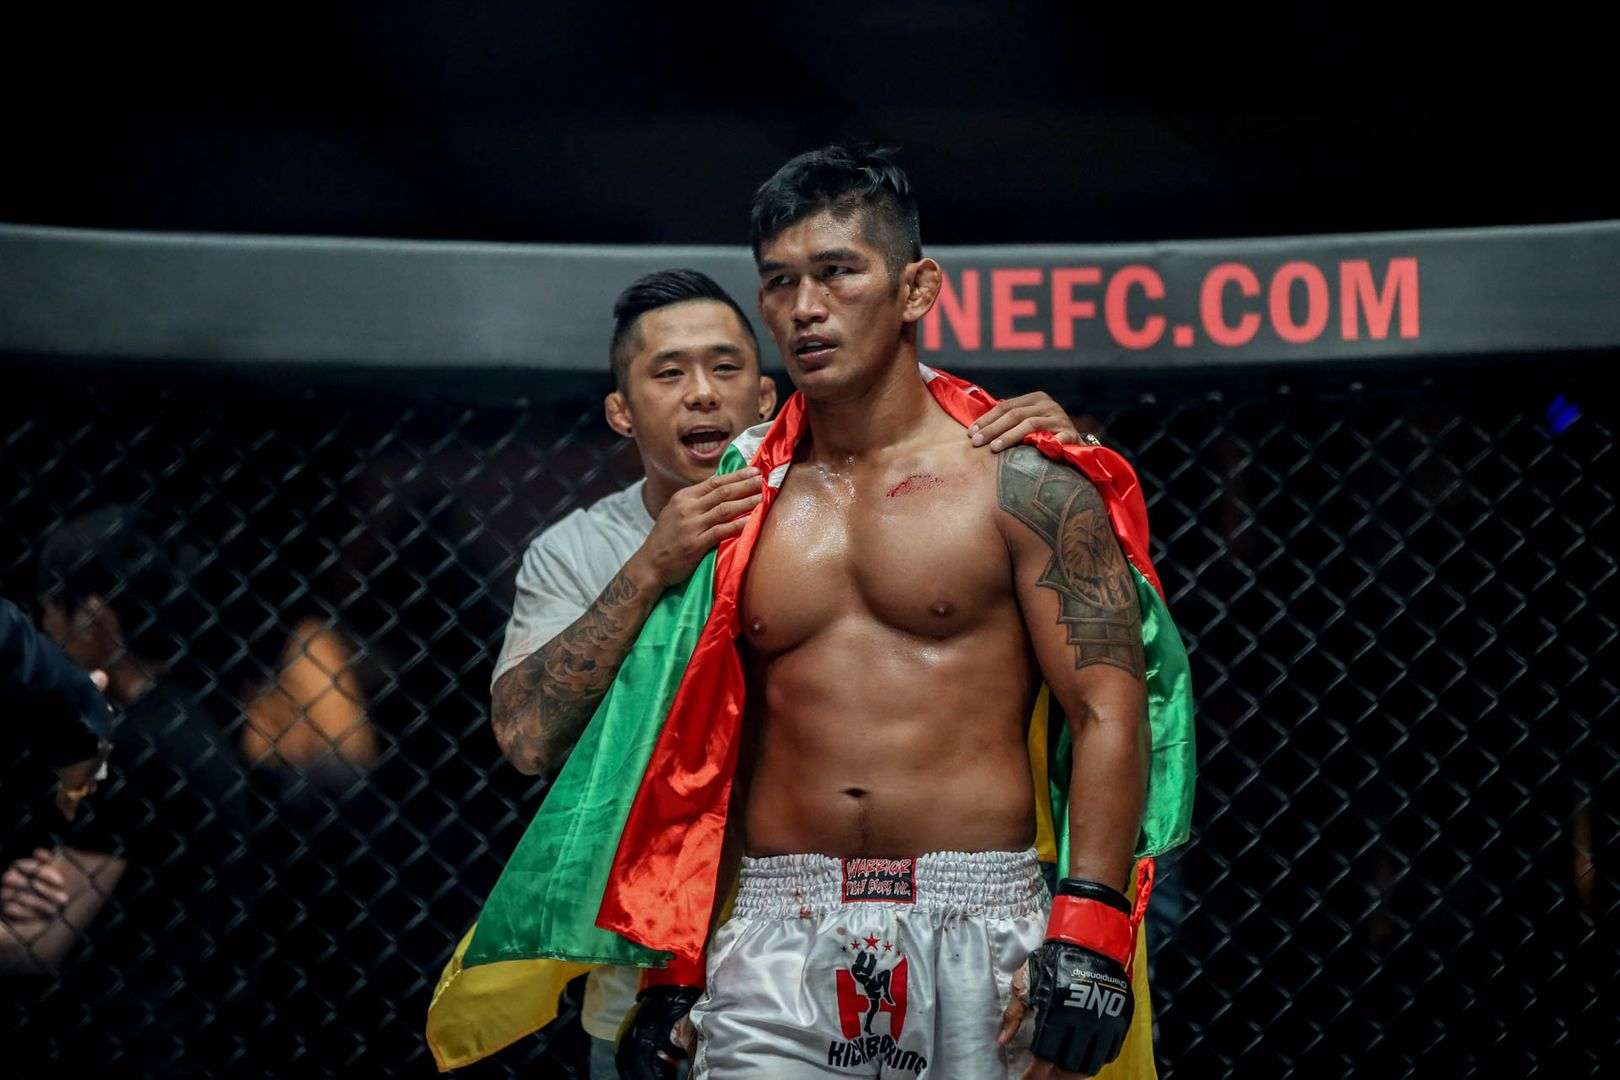 Two-division ONE World Champion Aung La N Sang